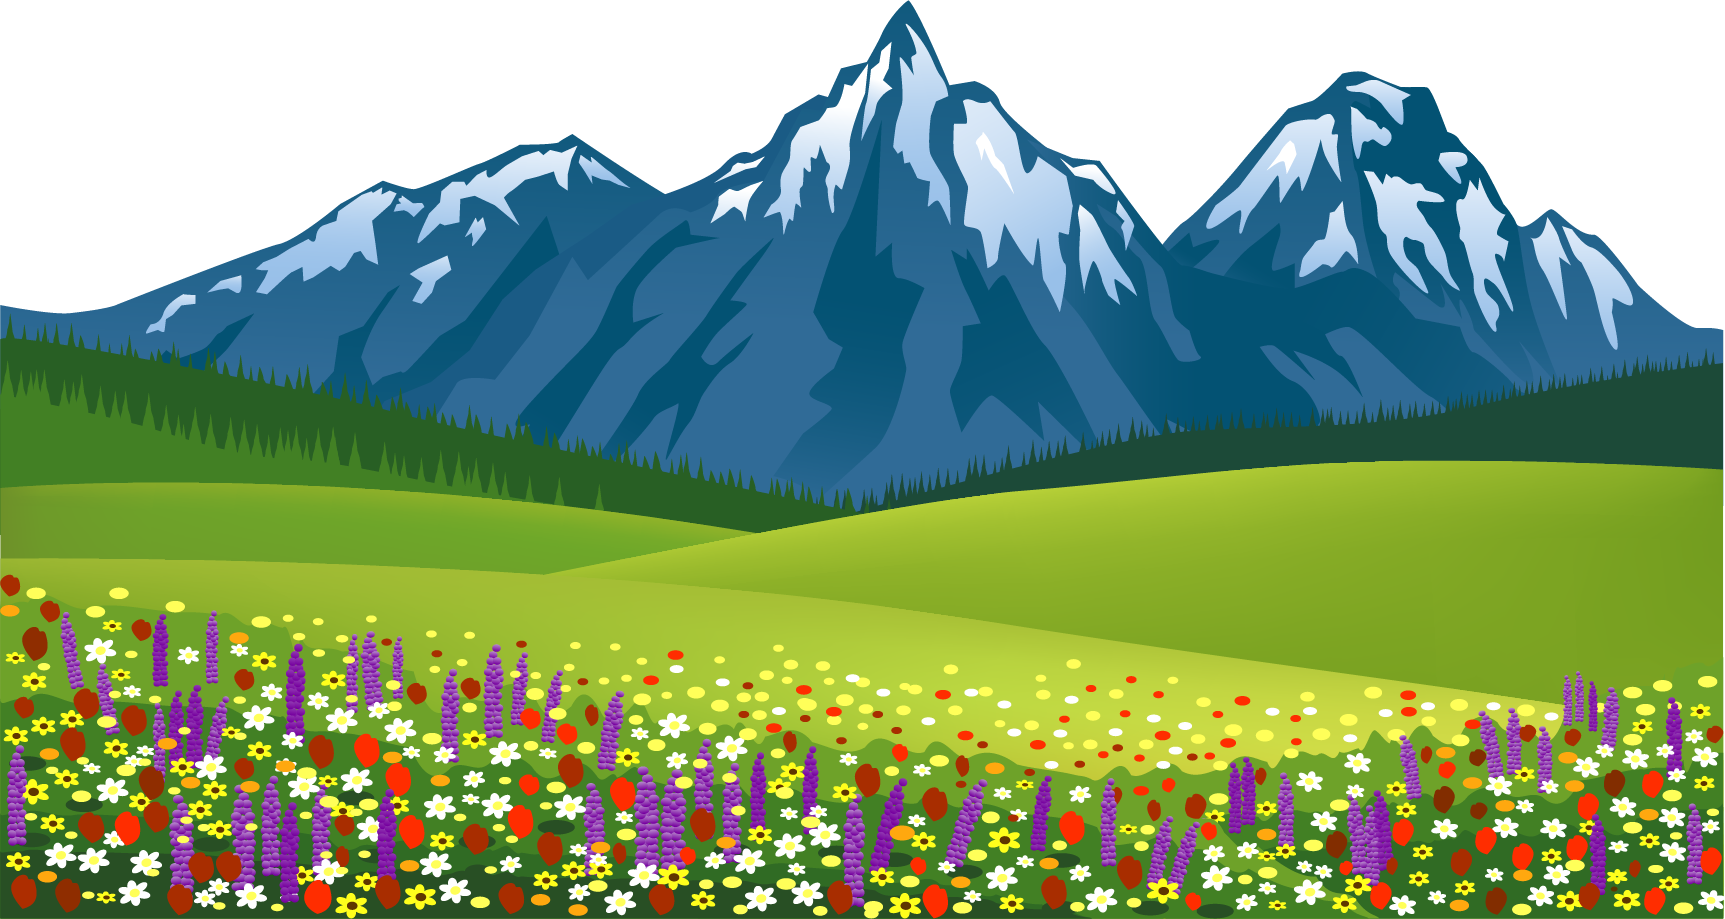 Hd mountain with flowers. Clipart grass scenery